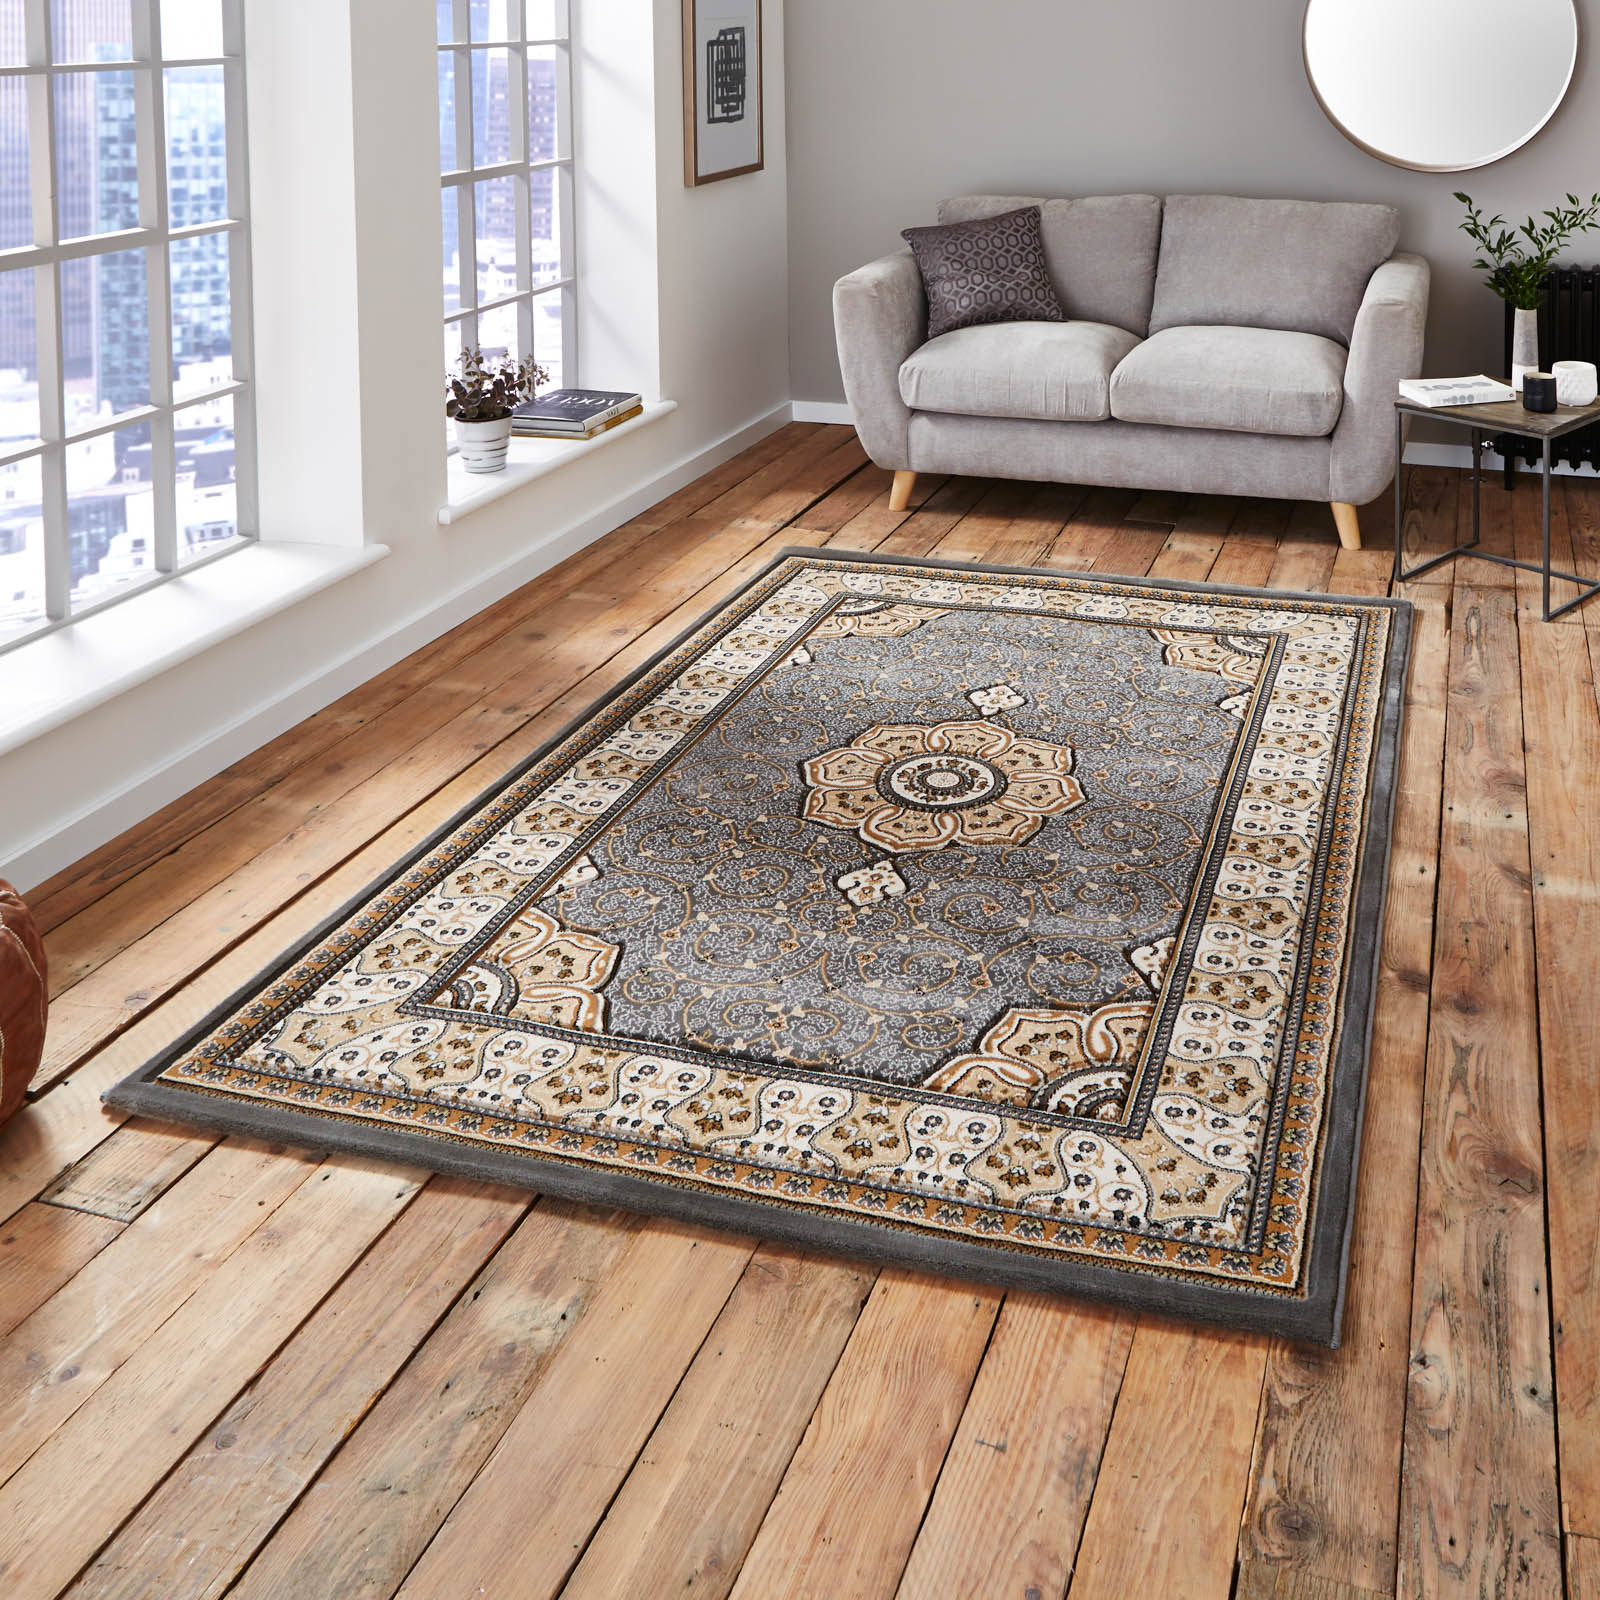 Heritage 4400 Rugs in Silver